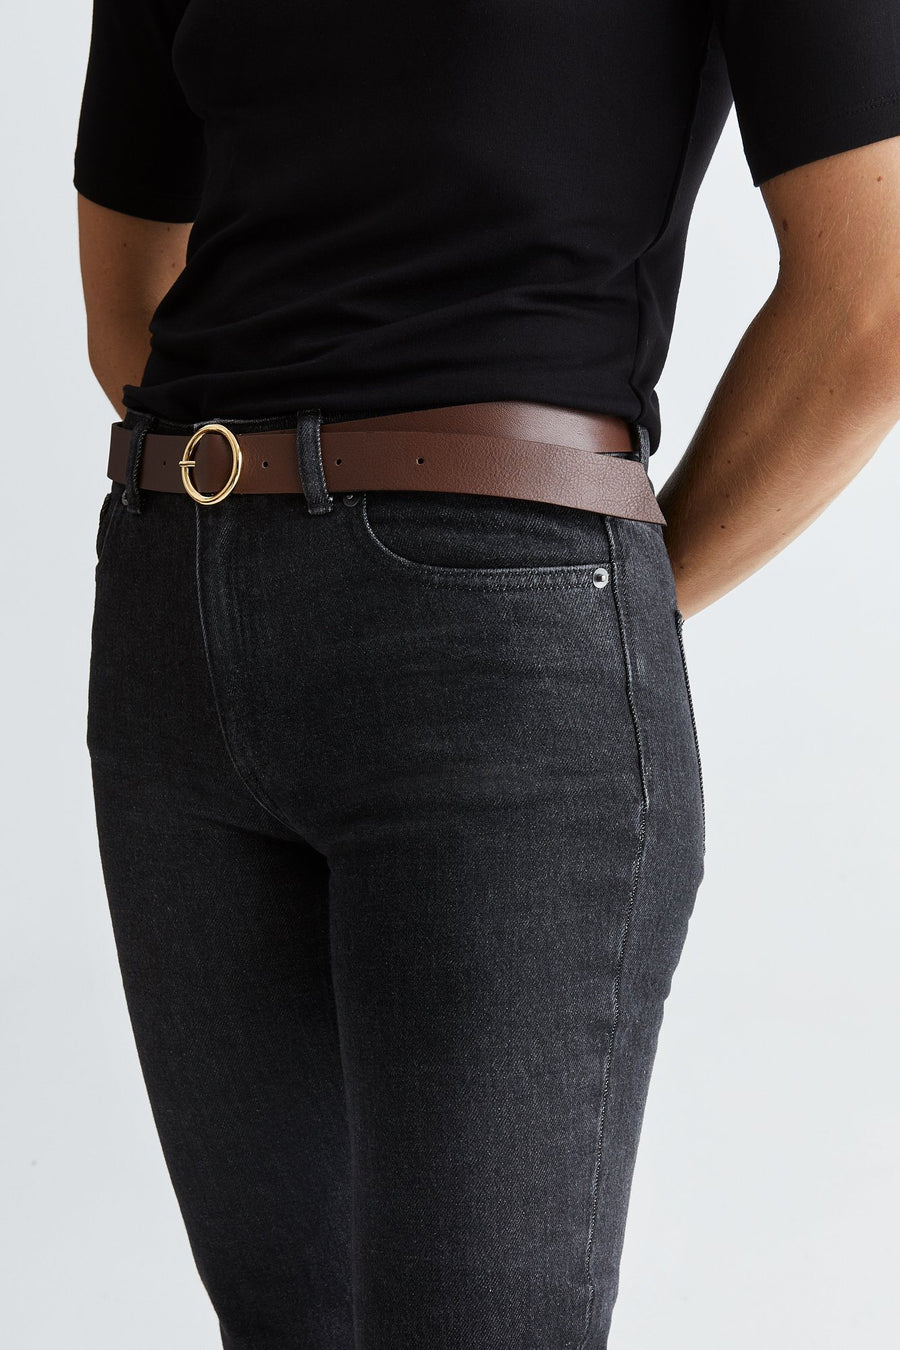 VIONA BELT - BROWN Accessories Stylein